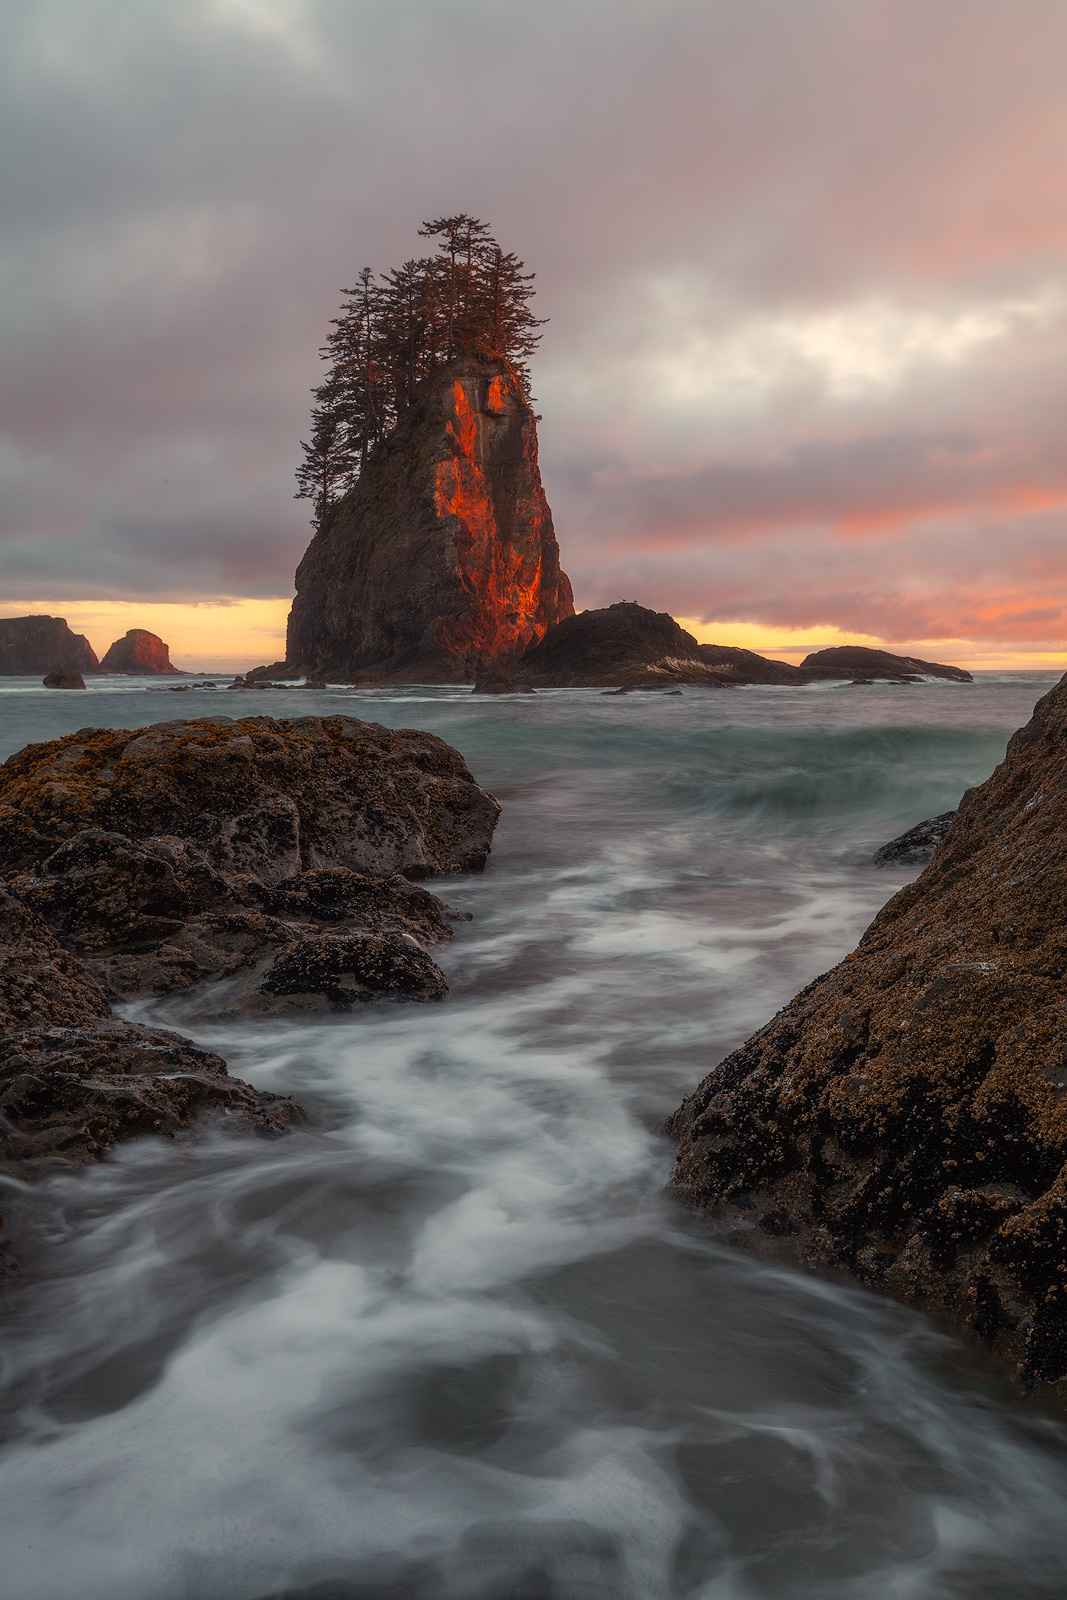 beautiful,cloudy,coast,evening,long exposure,north america,northwest,ocean,pacific northwest,pacific ocean,sand,sea stack,second beach,shore,sunset,united states,vertical,washington,water body,wave, photo